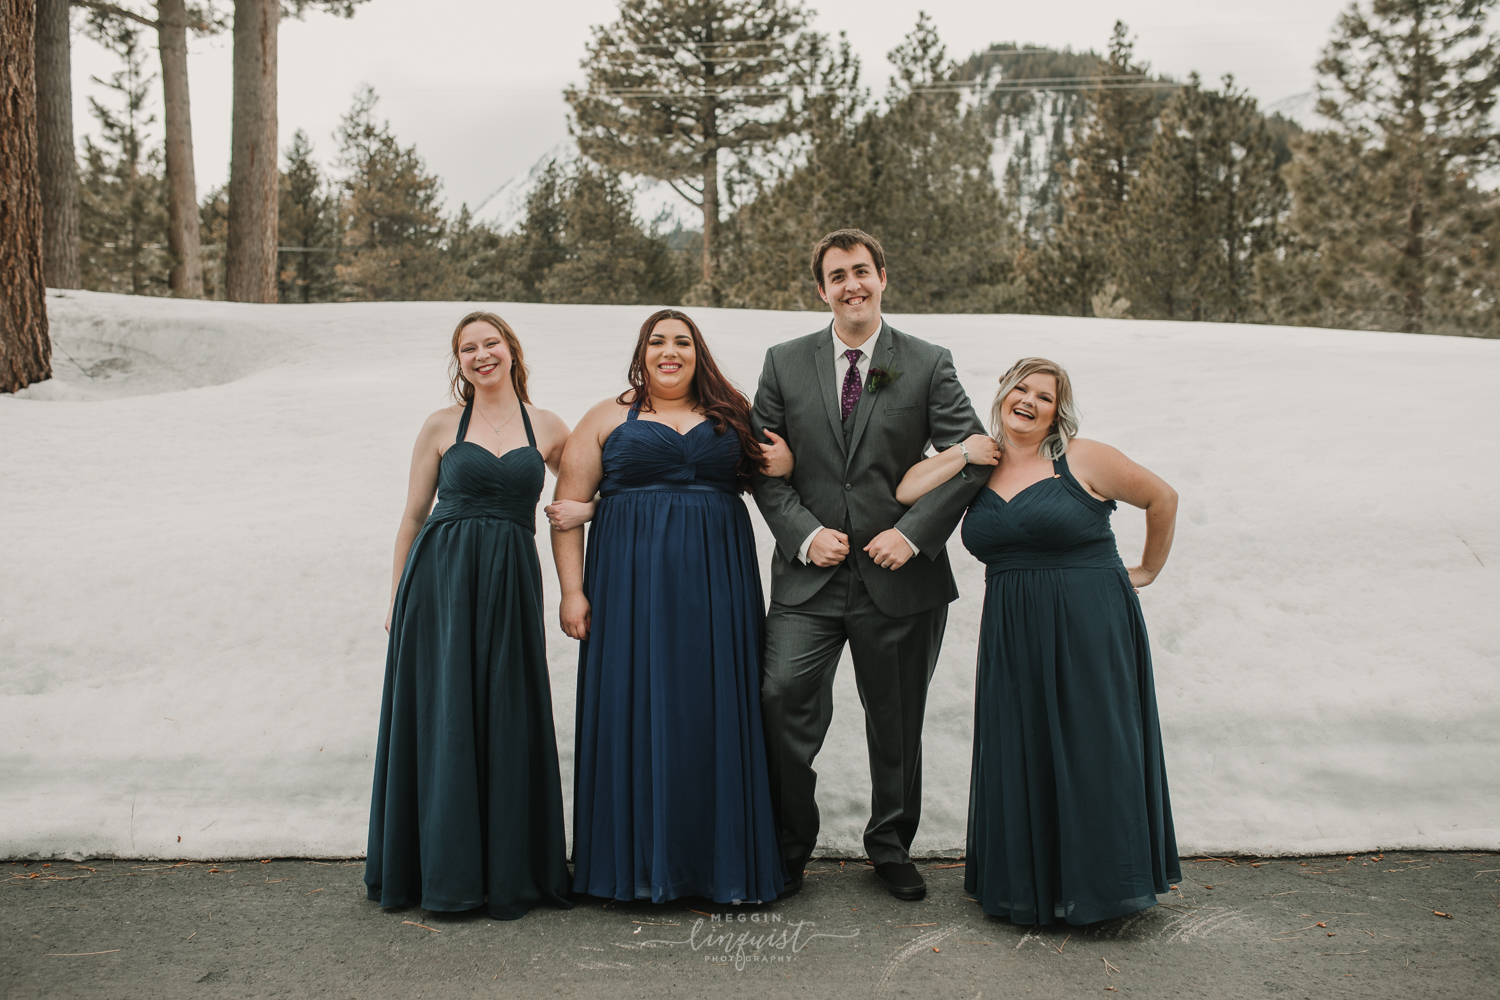 music-themed-winter-wedding-tannenbaum-event-center-reno-lake-tahoe-wedding-photographer-42.jpg